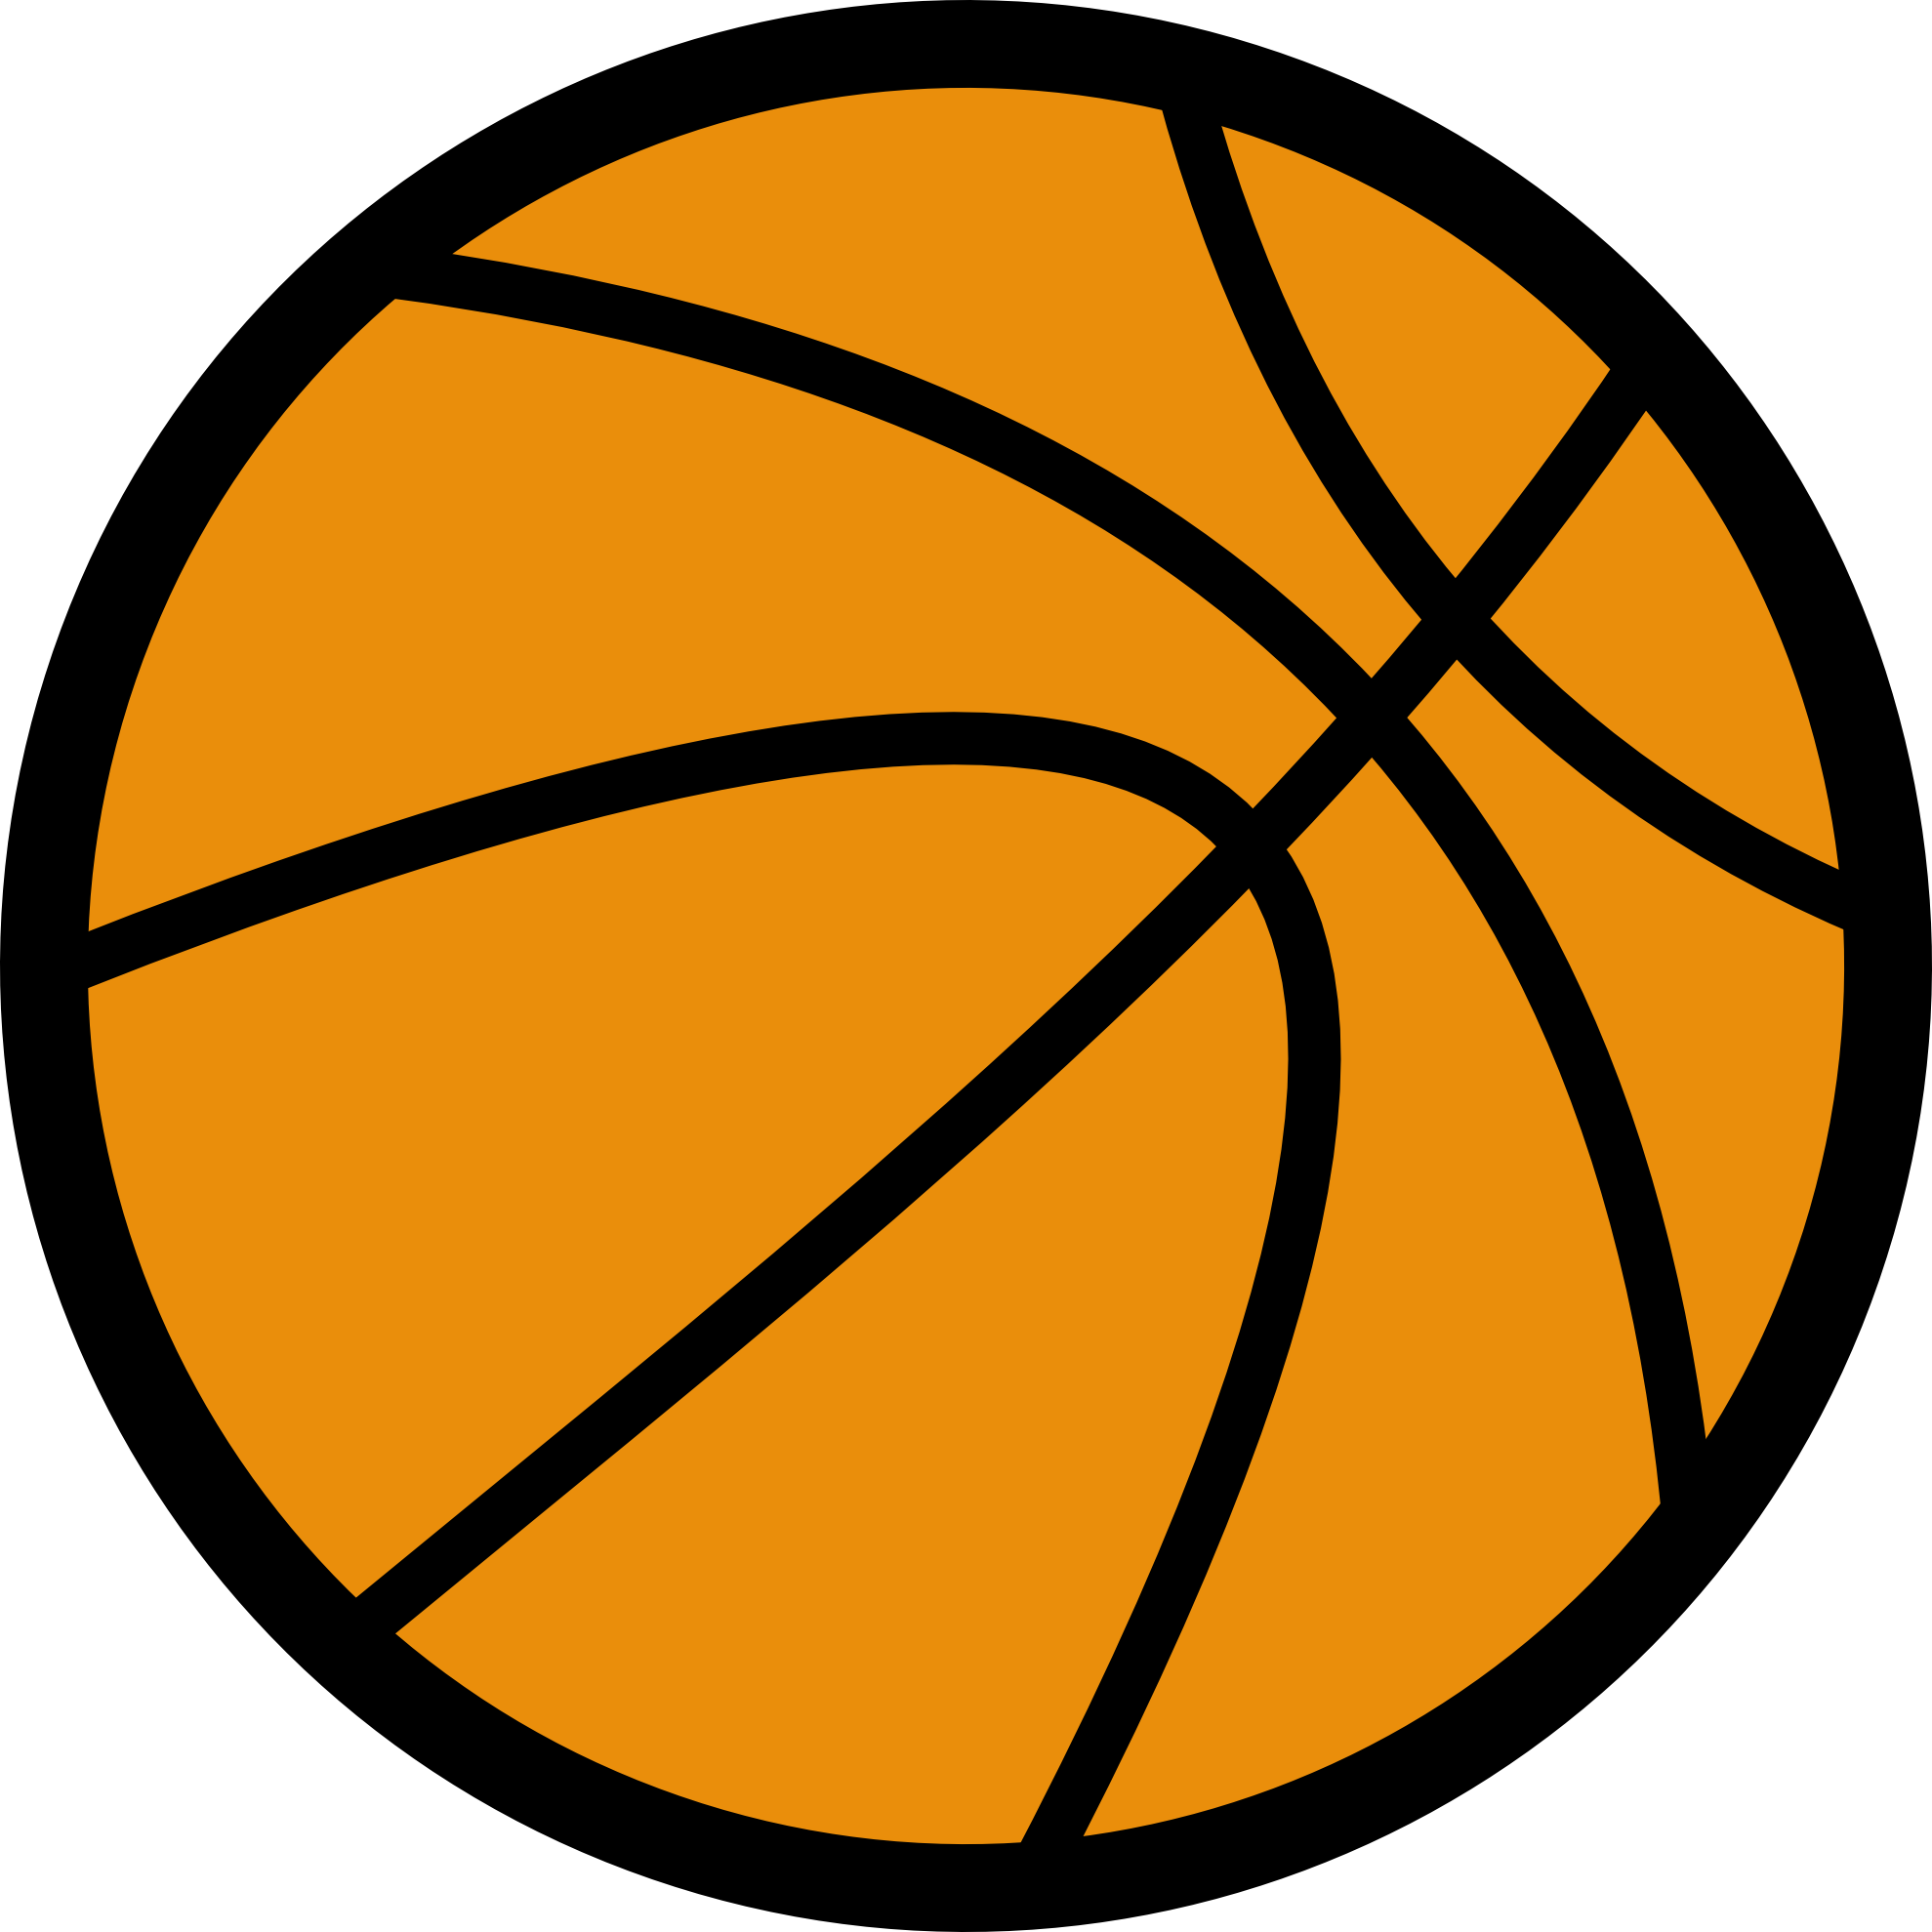 girls%20basketball%20clipart%20black%20and%20white